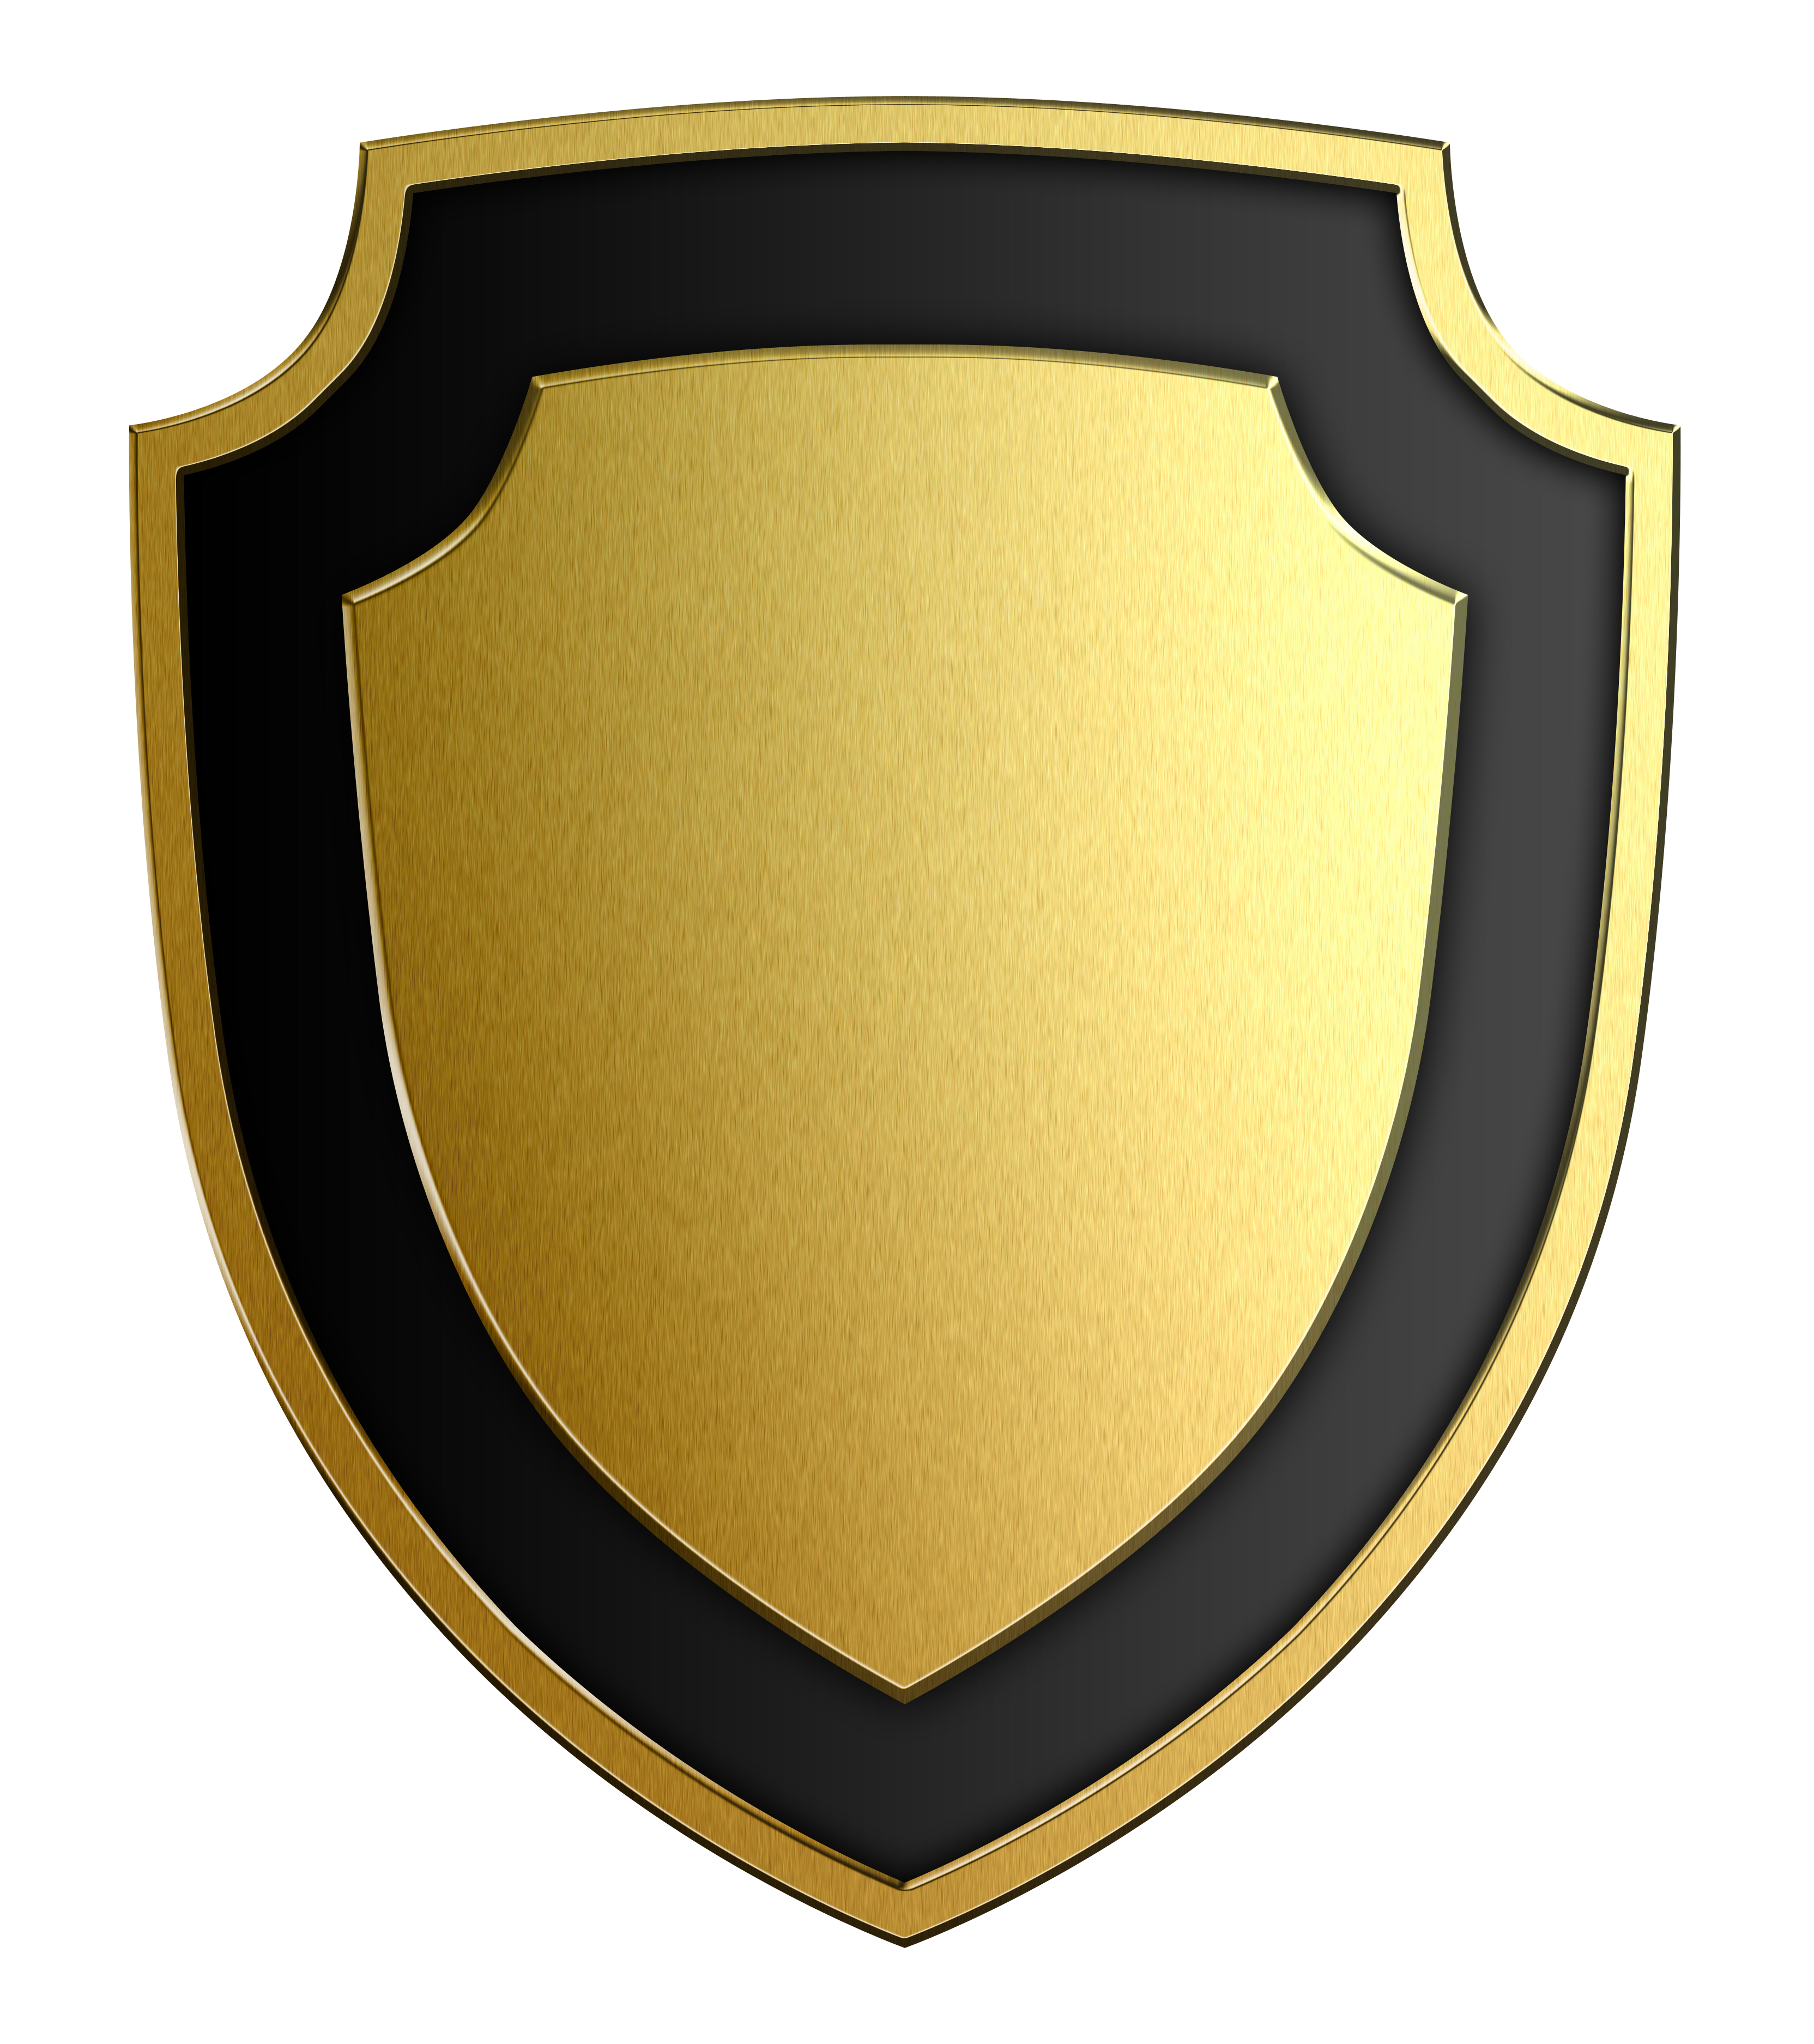 Shield HD PNG Transparent Shield HD.PNG Images. | PlusPNG